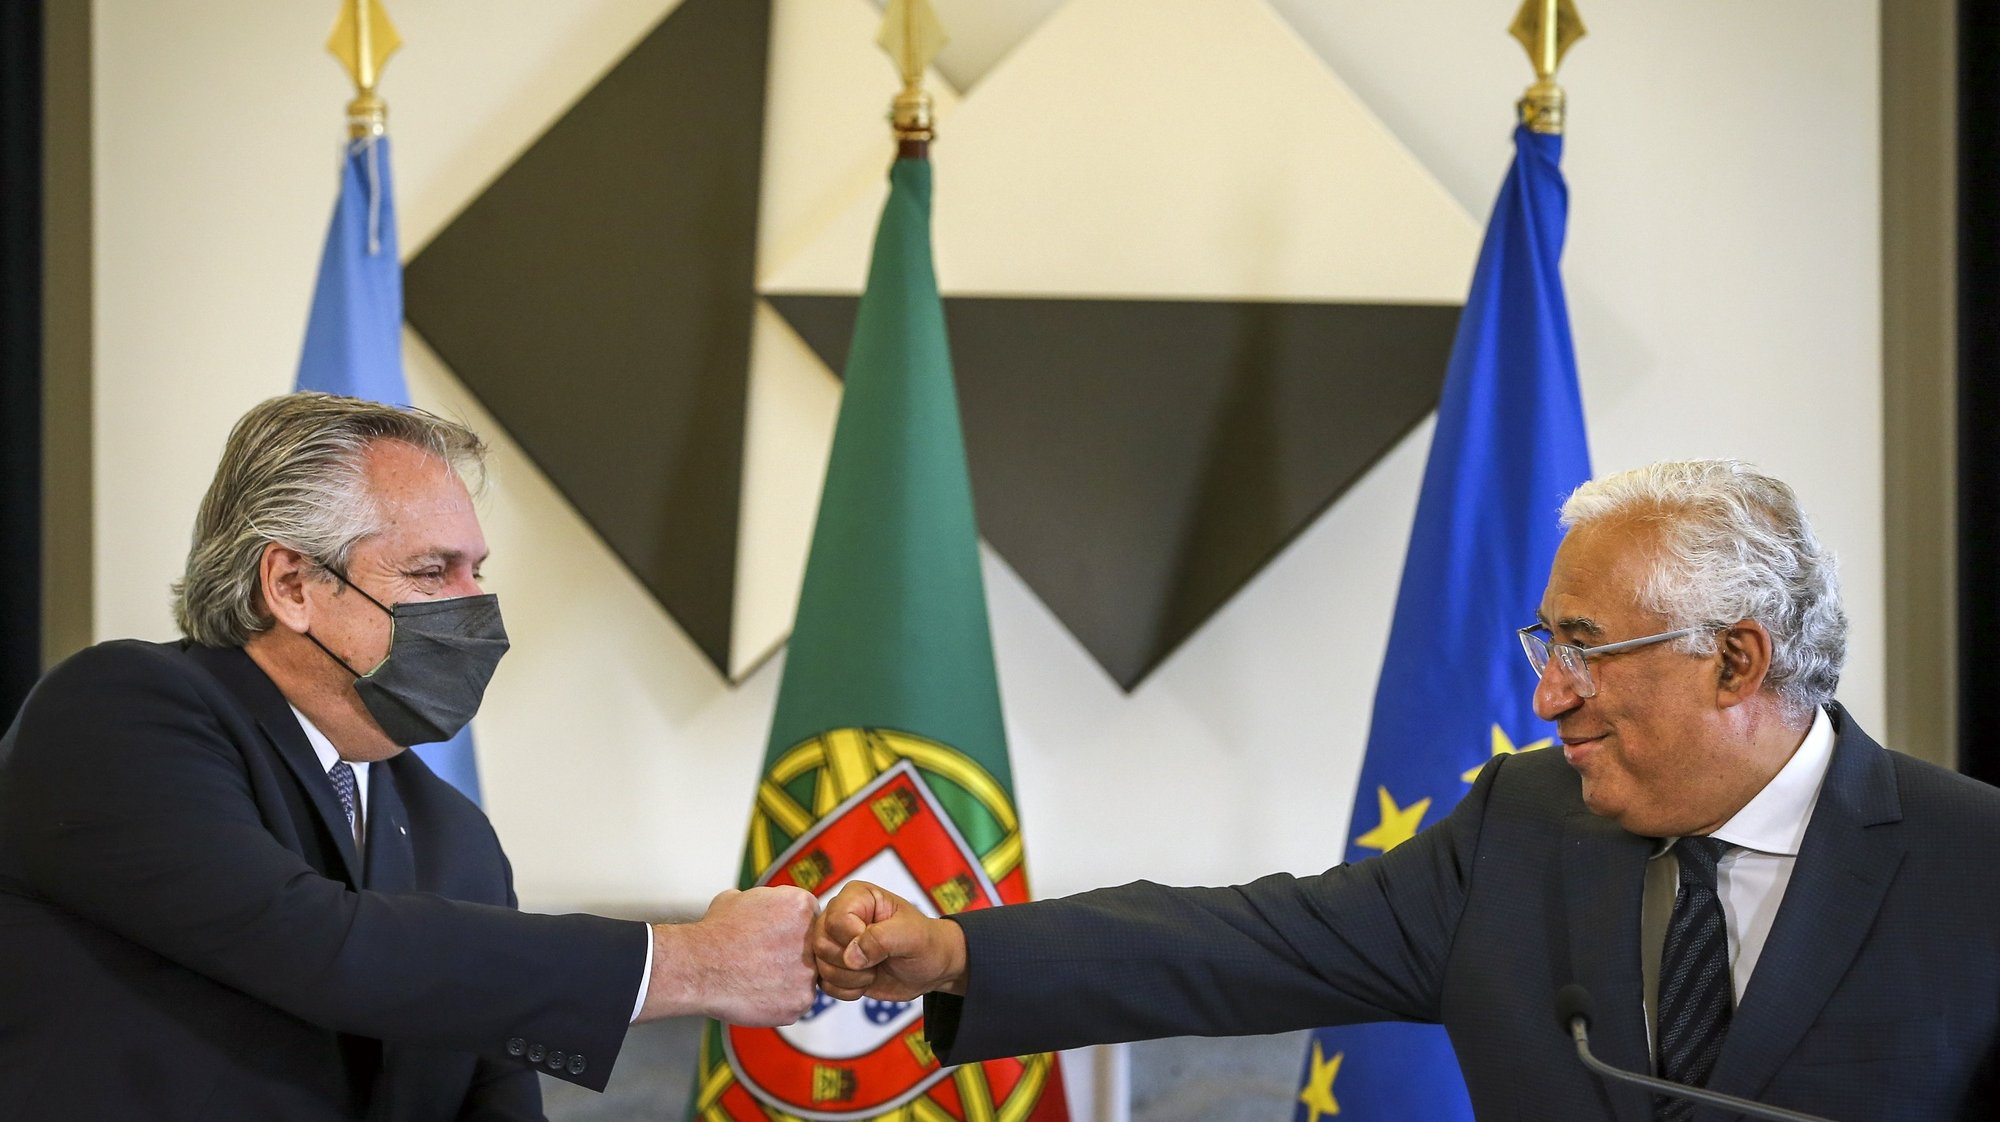 Argentine President Alberto Fernandez (L) and Portuguese Prime Minister Antonio Costa (R) during a press conference at the end of a meeting at Sao Bento Palace in Lisbon, Portugal, 10 May 2021. RODRIGO ANTUNES/LUSA